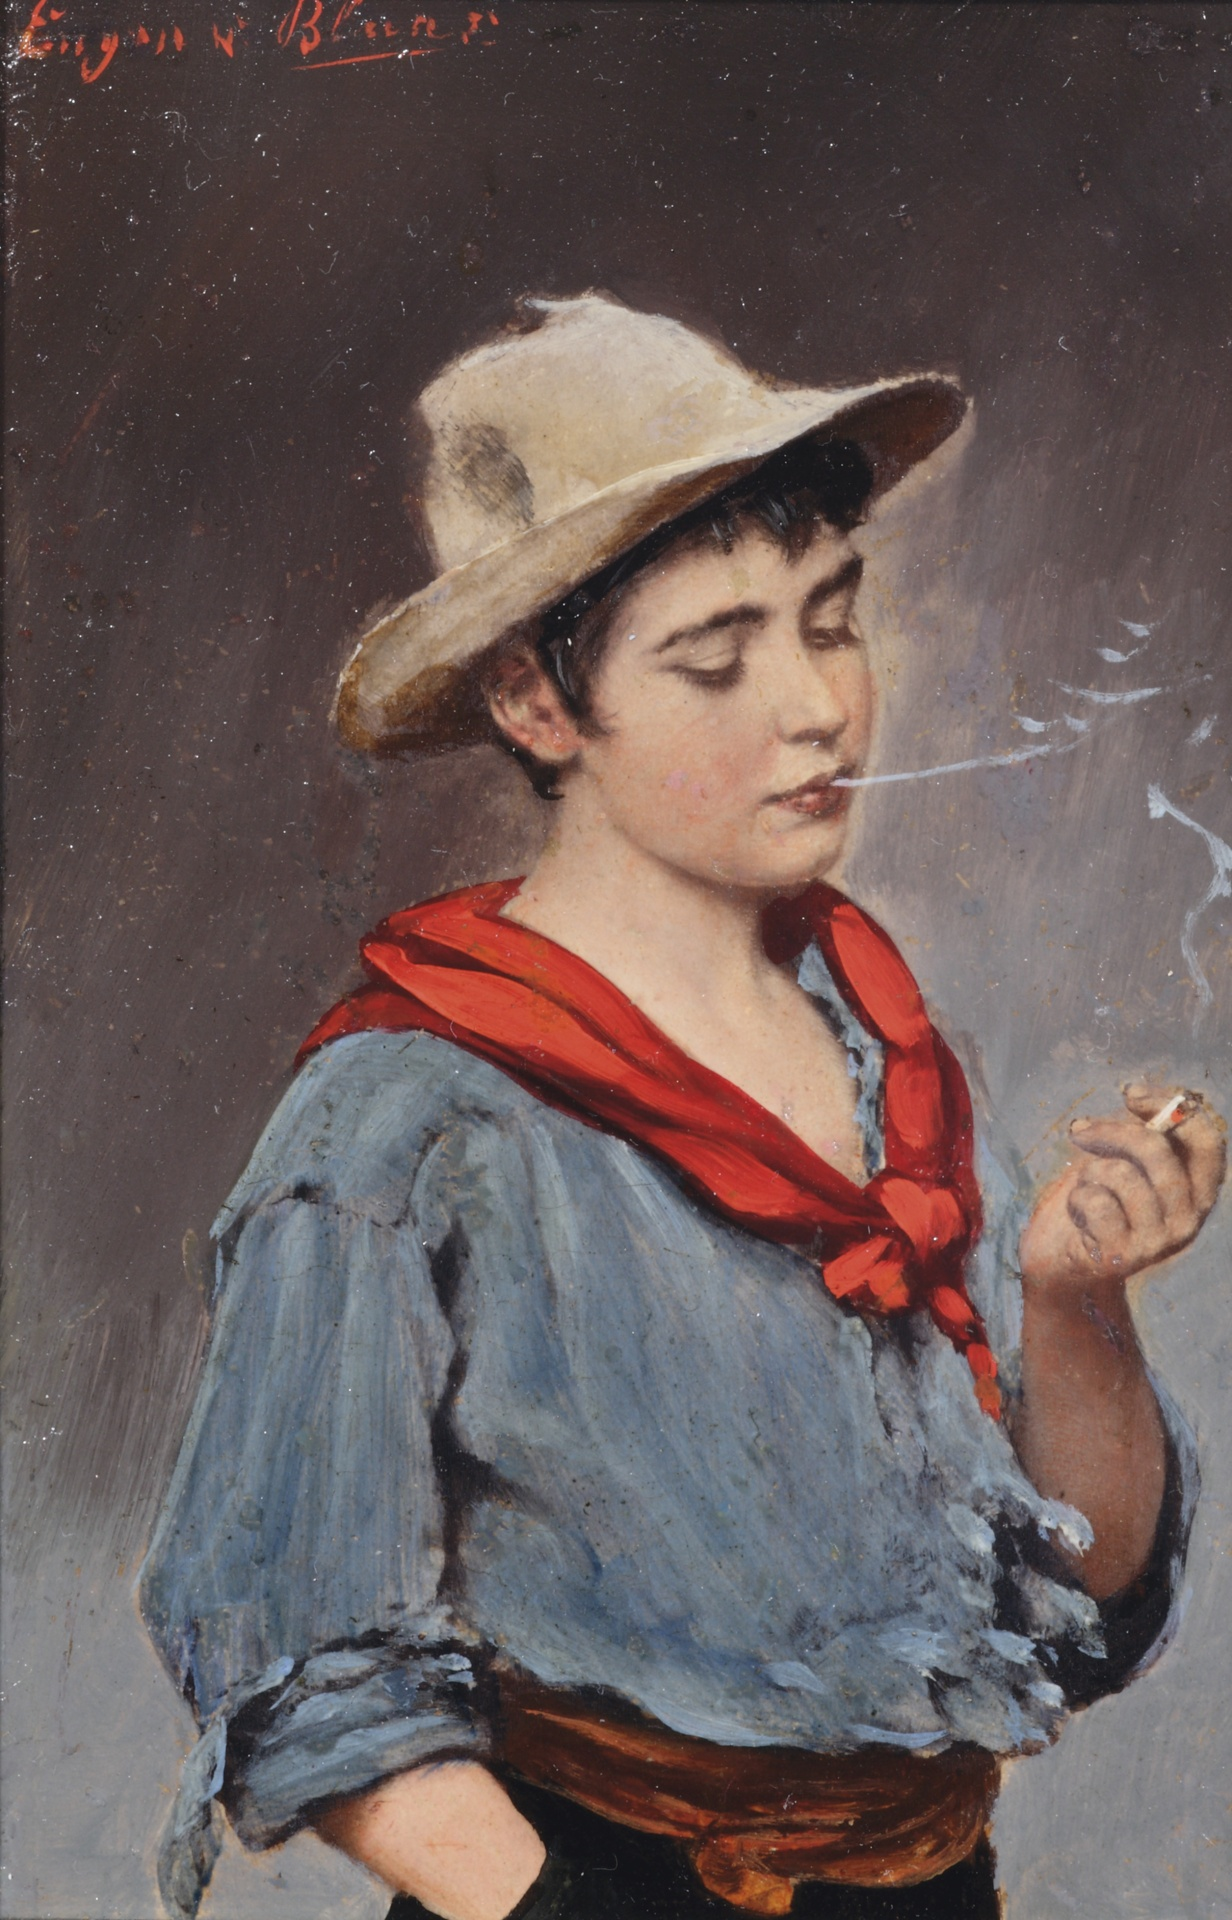 The little smoker